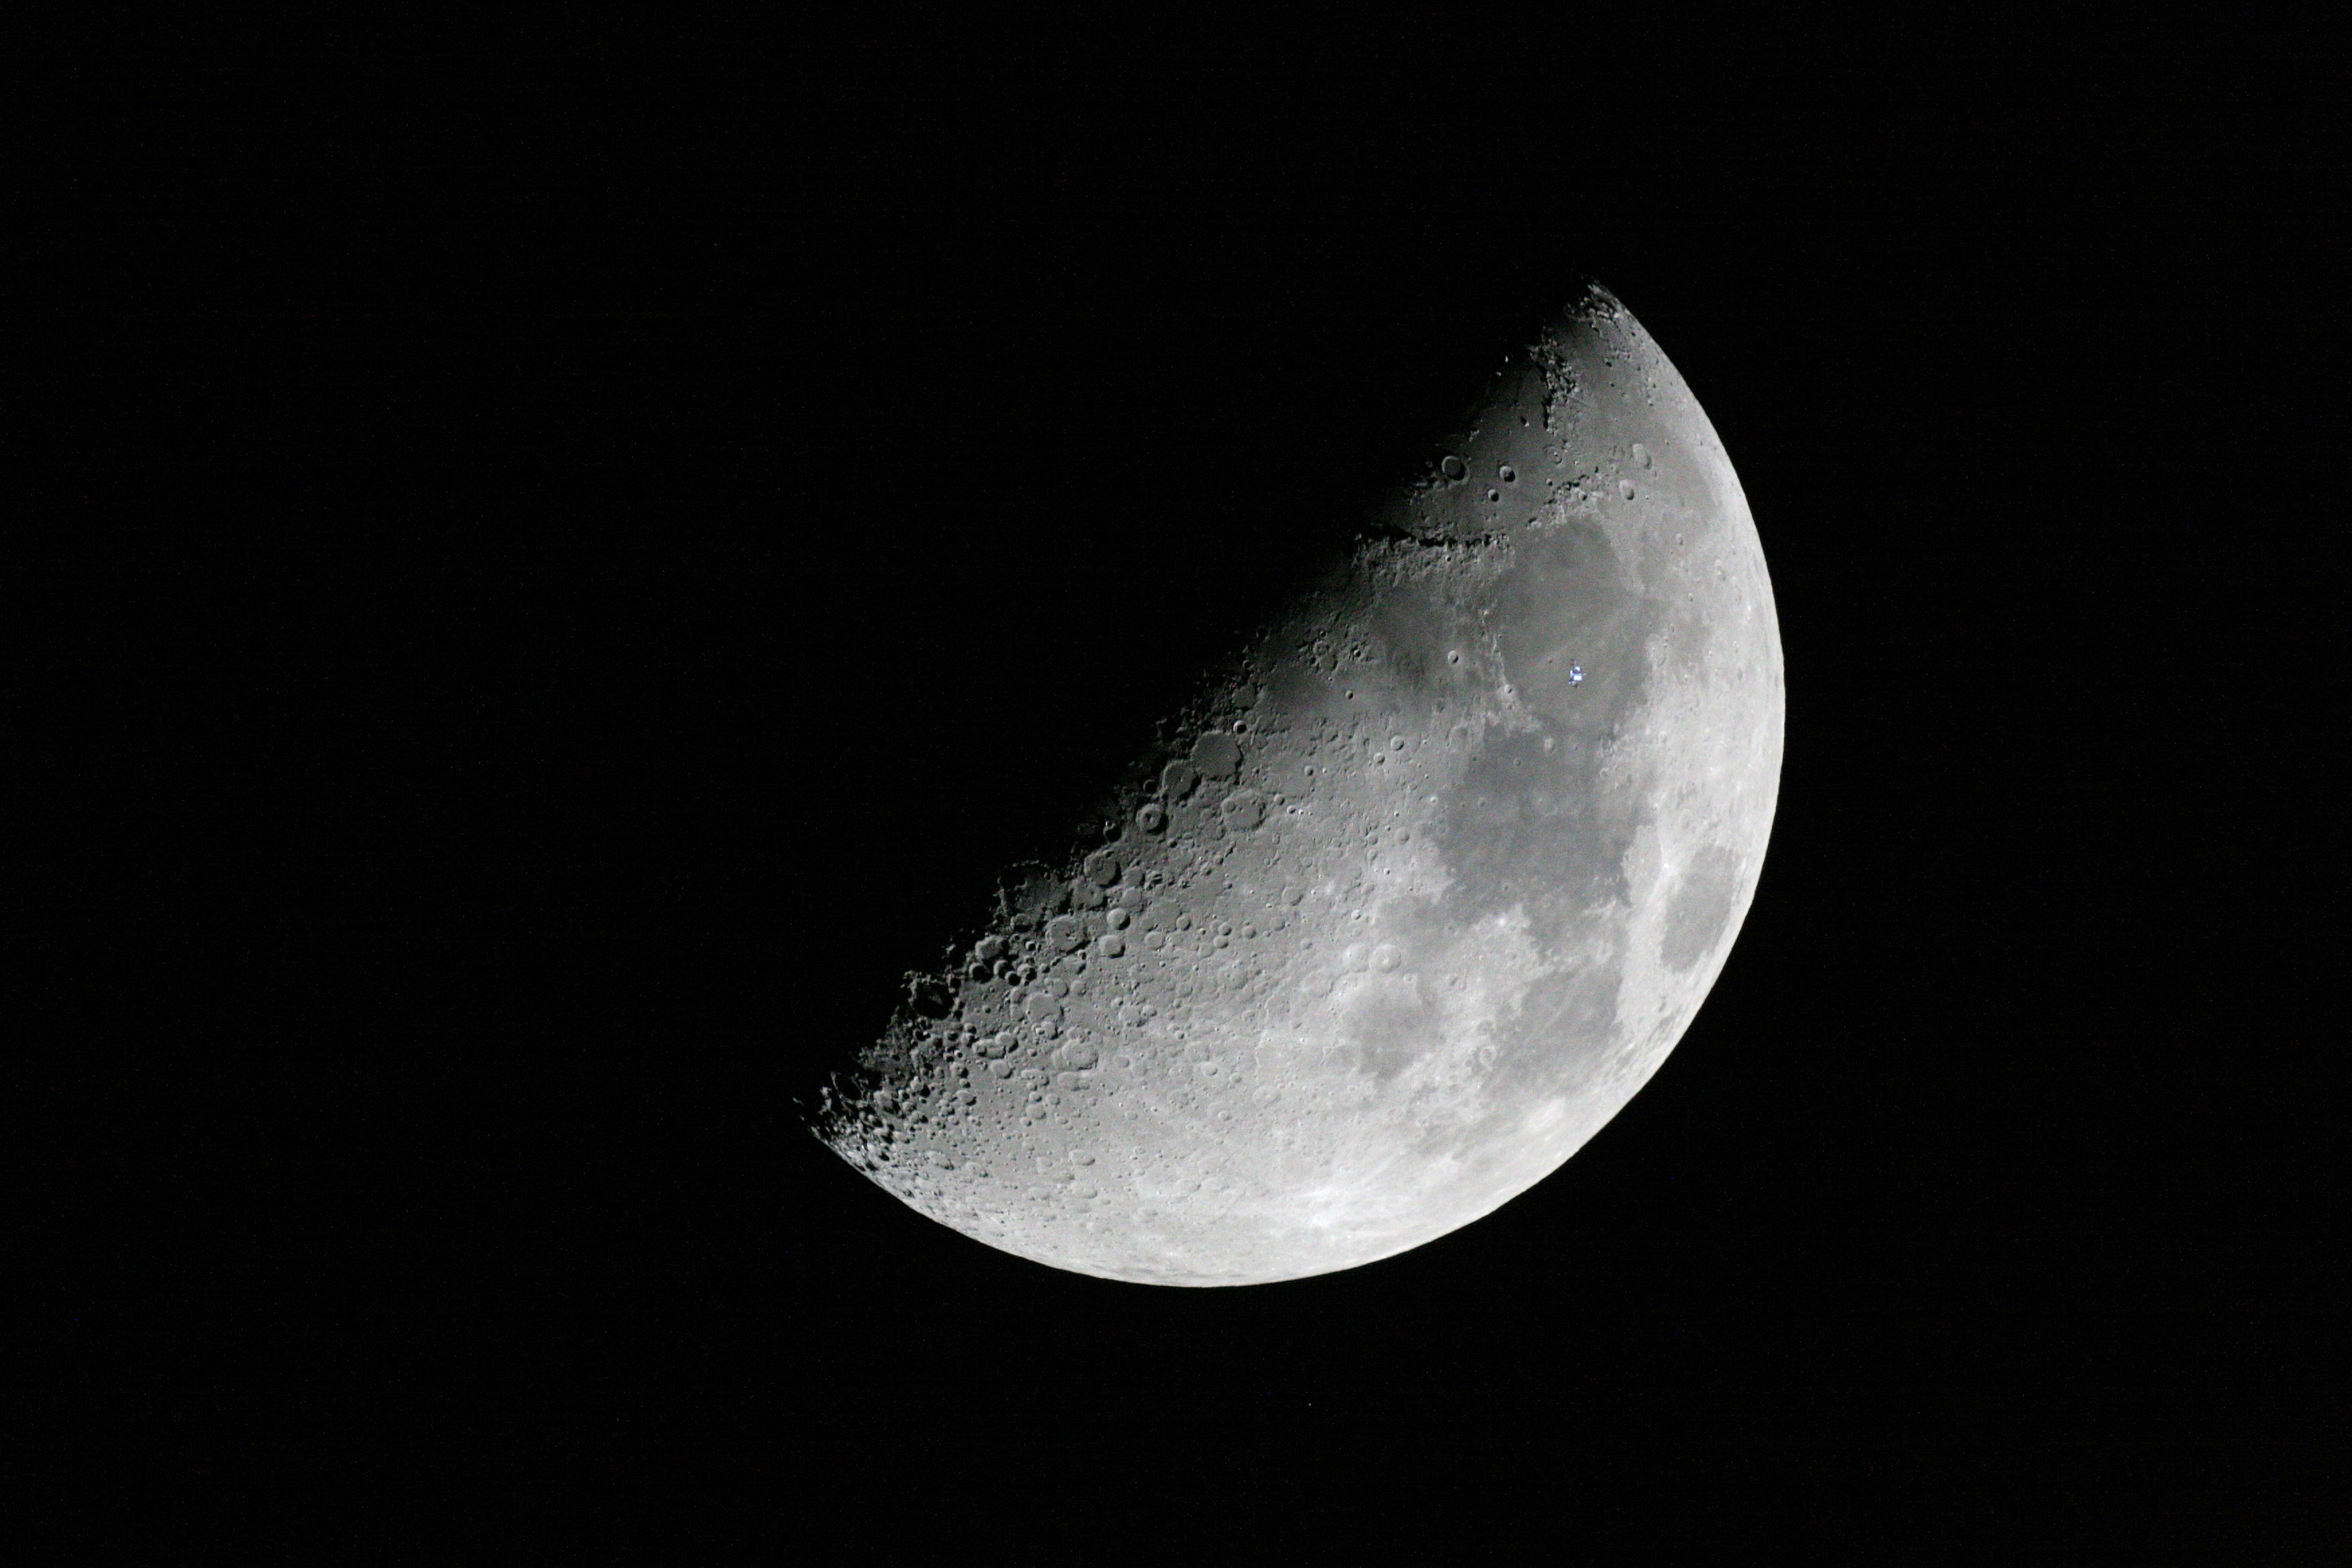 moon space station pictures - photo #18